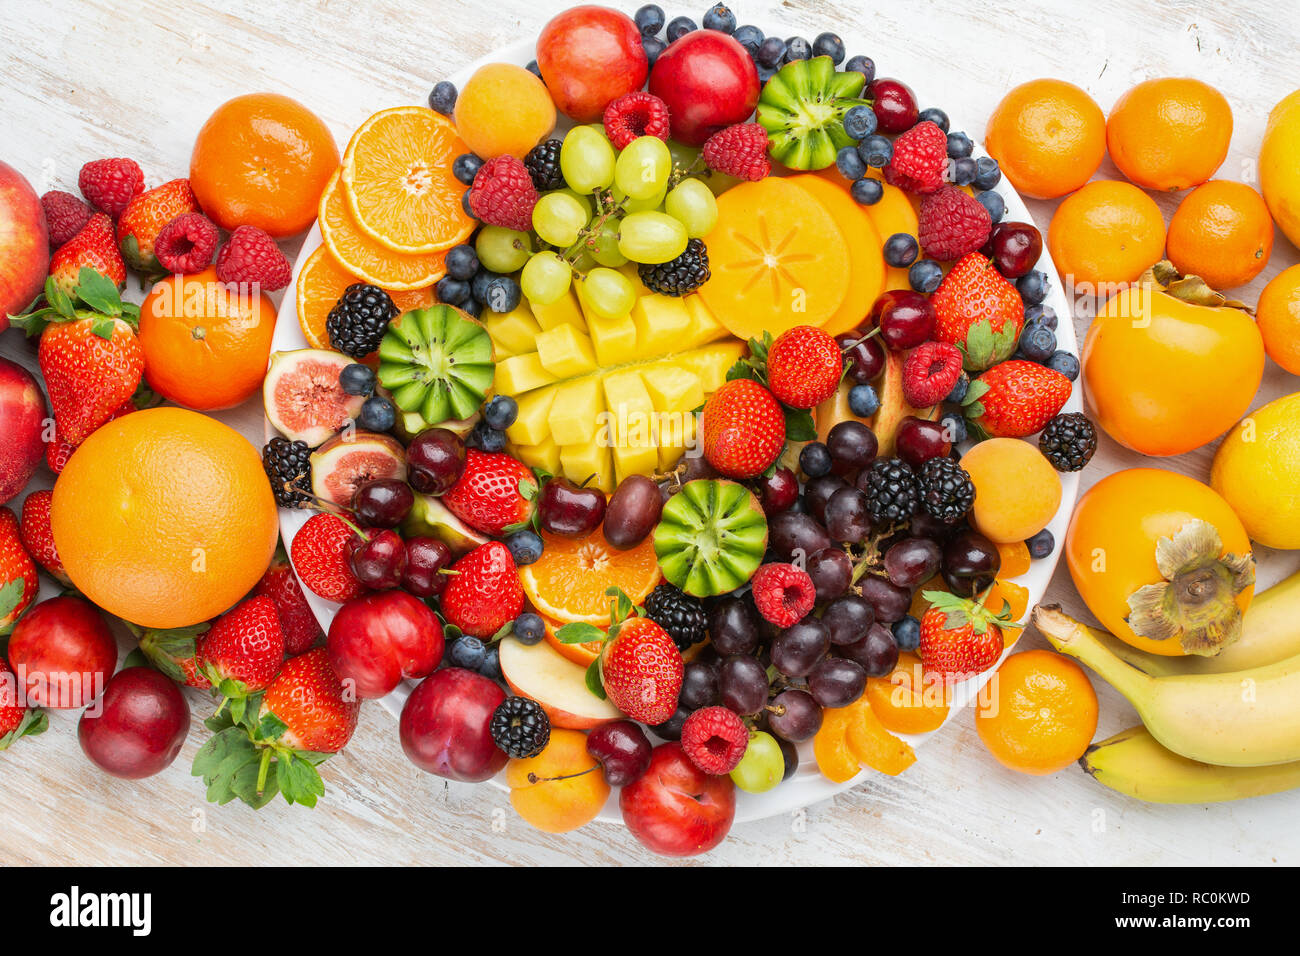 Healthy Platter With Colorful Rainbow Fruits Strawberries Raspberries Oranges Plums Apples Kiwis Grapes Blueberries Mango Persimmon Top View Stock Photo Alamy